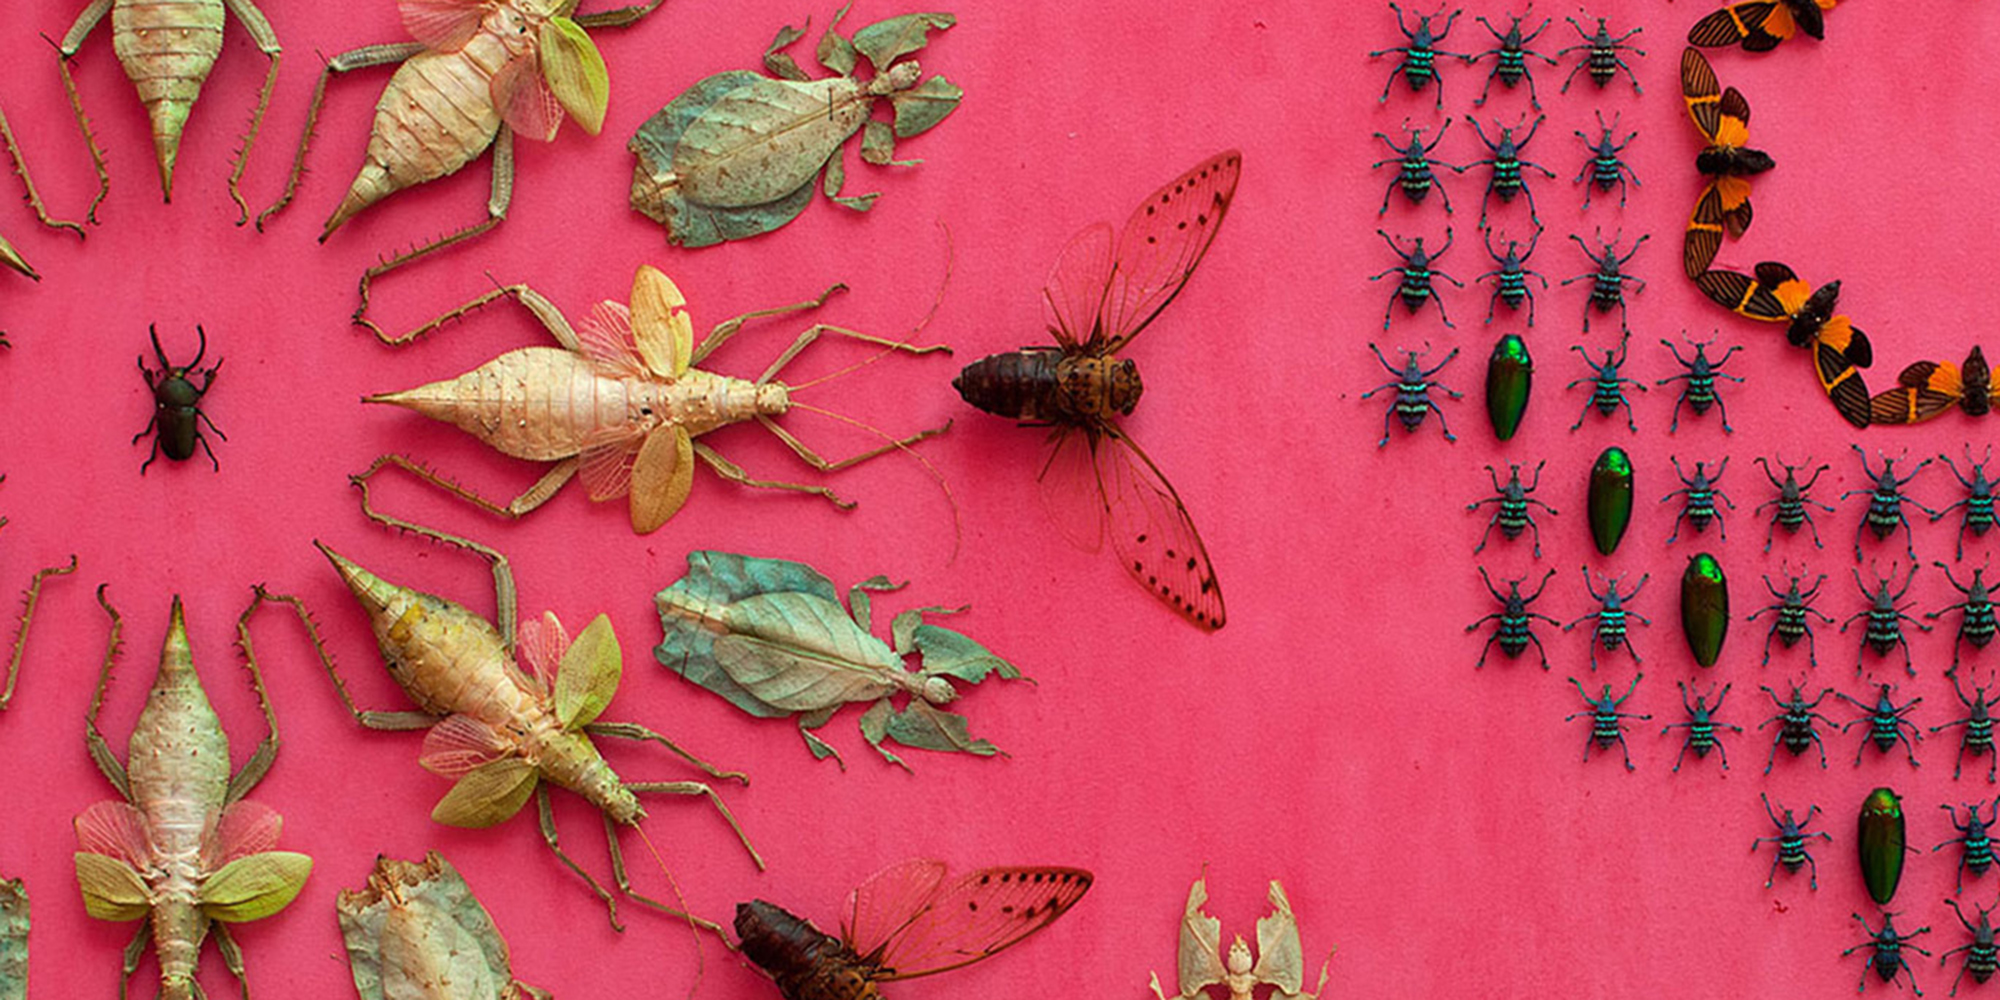 Insects pinned onto a yellow background in intricate geometric designs